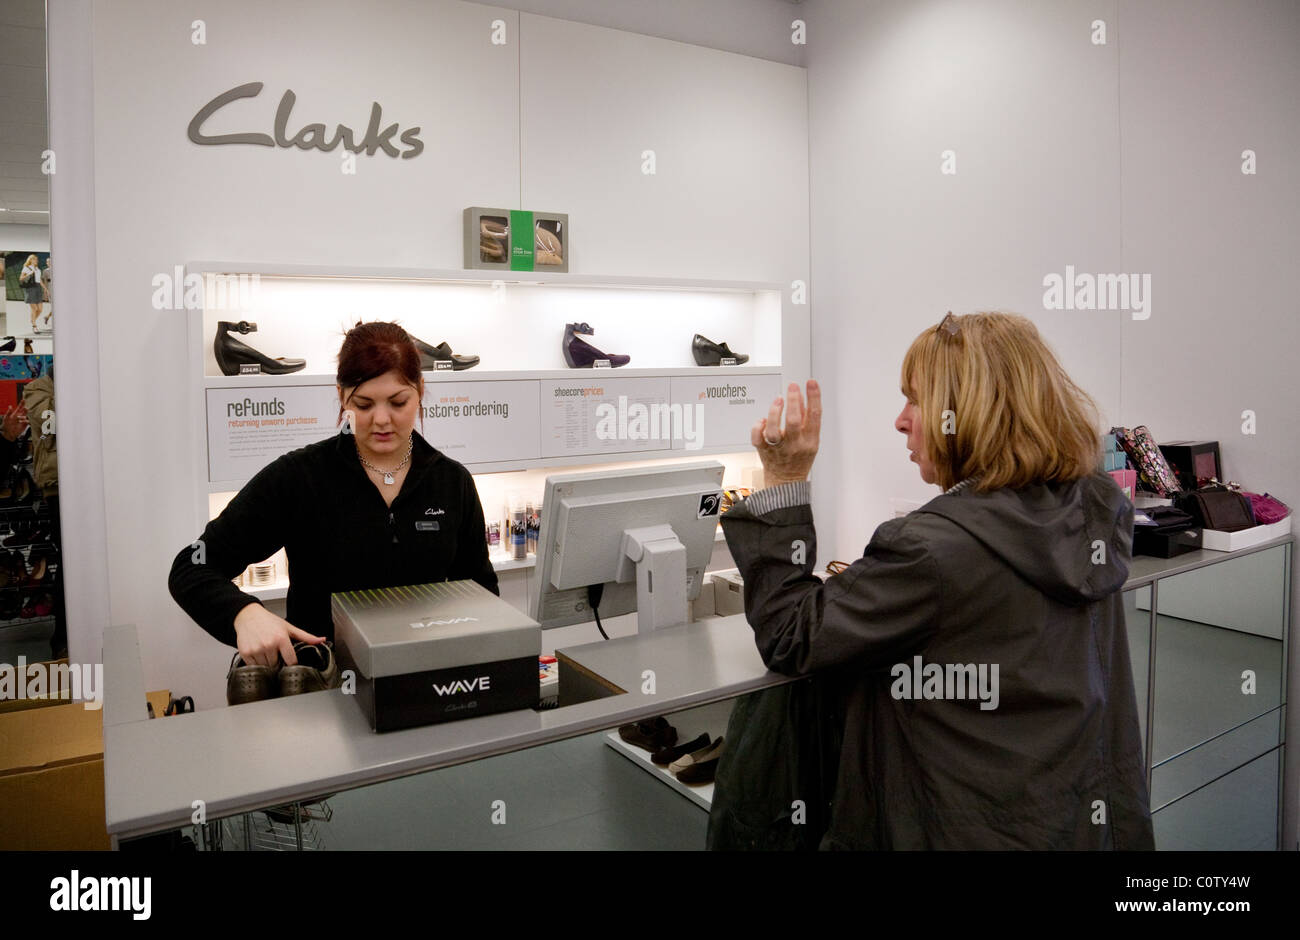 A woman buying shoes at the checkout, Clarks shoe shop